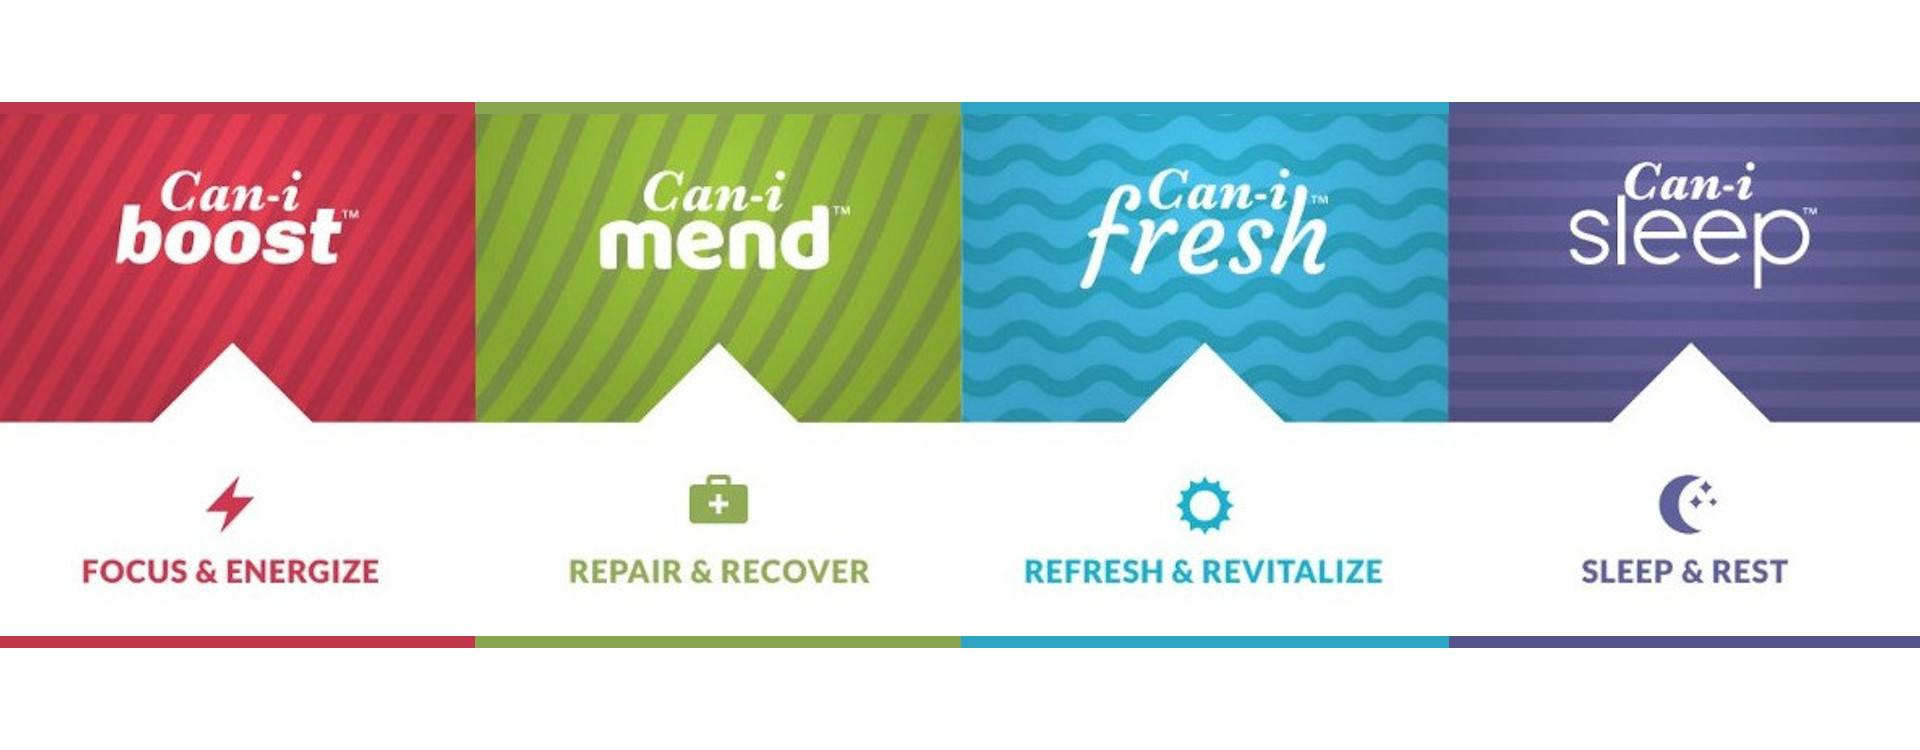 CaniBrands™ Extends National Brand to Retailers while Bundled Solutions Reach One Third of Sales